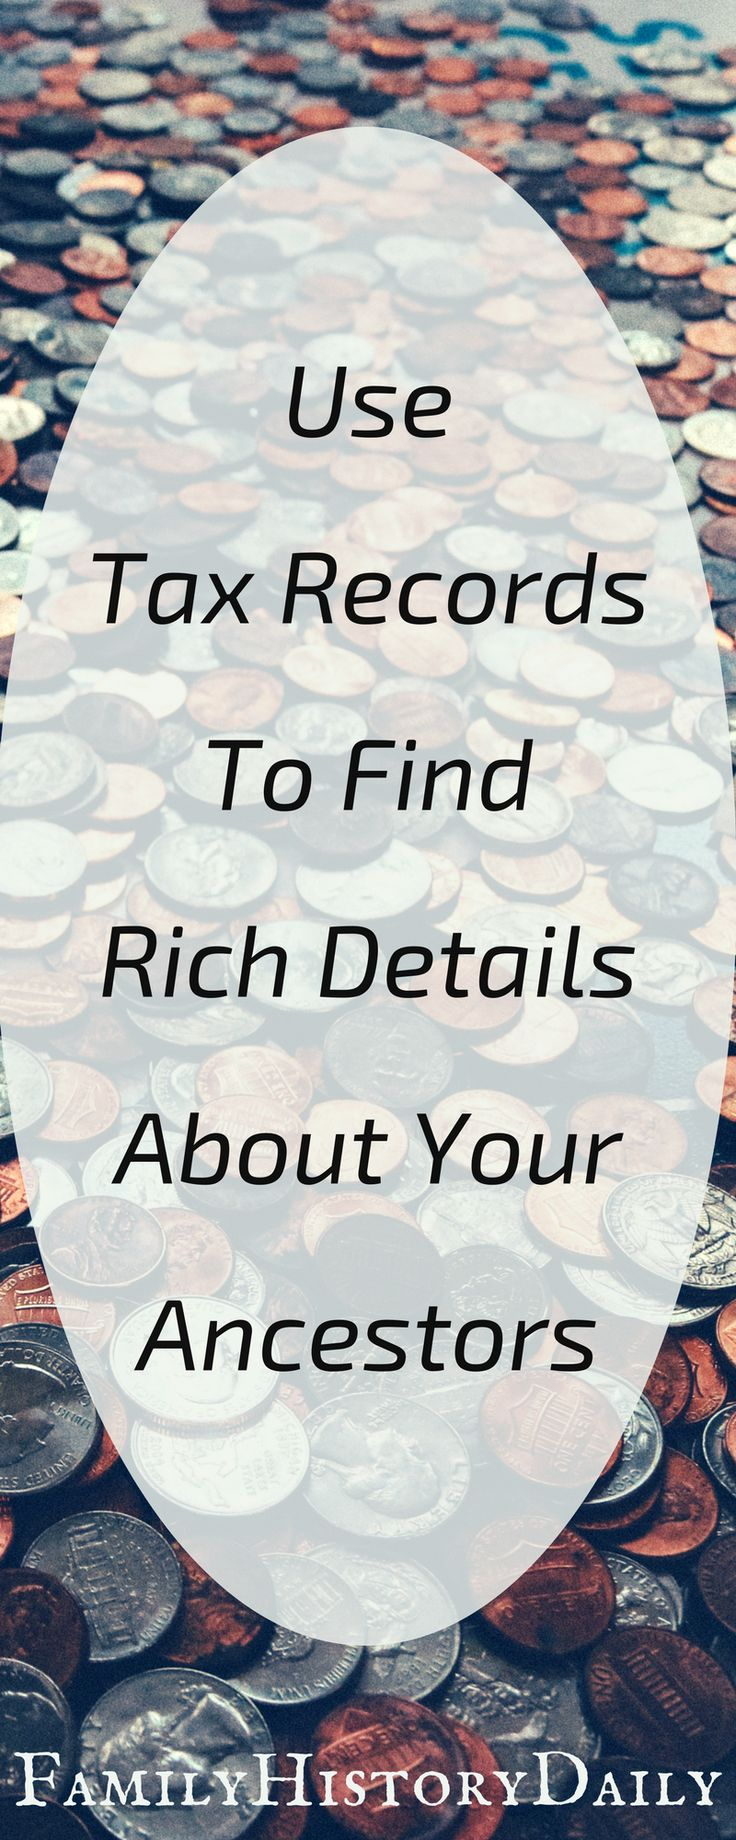 Using tax records in your genealogy research can help you learn about your ancestry by bridging information gaps between census years and adding more detail to your family tree.